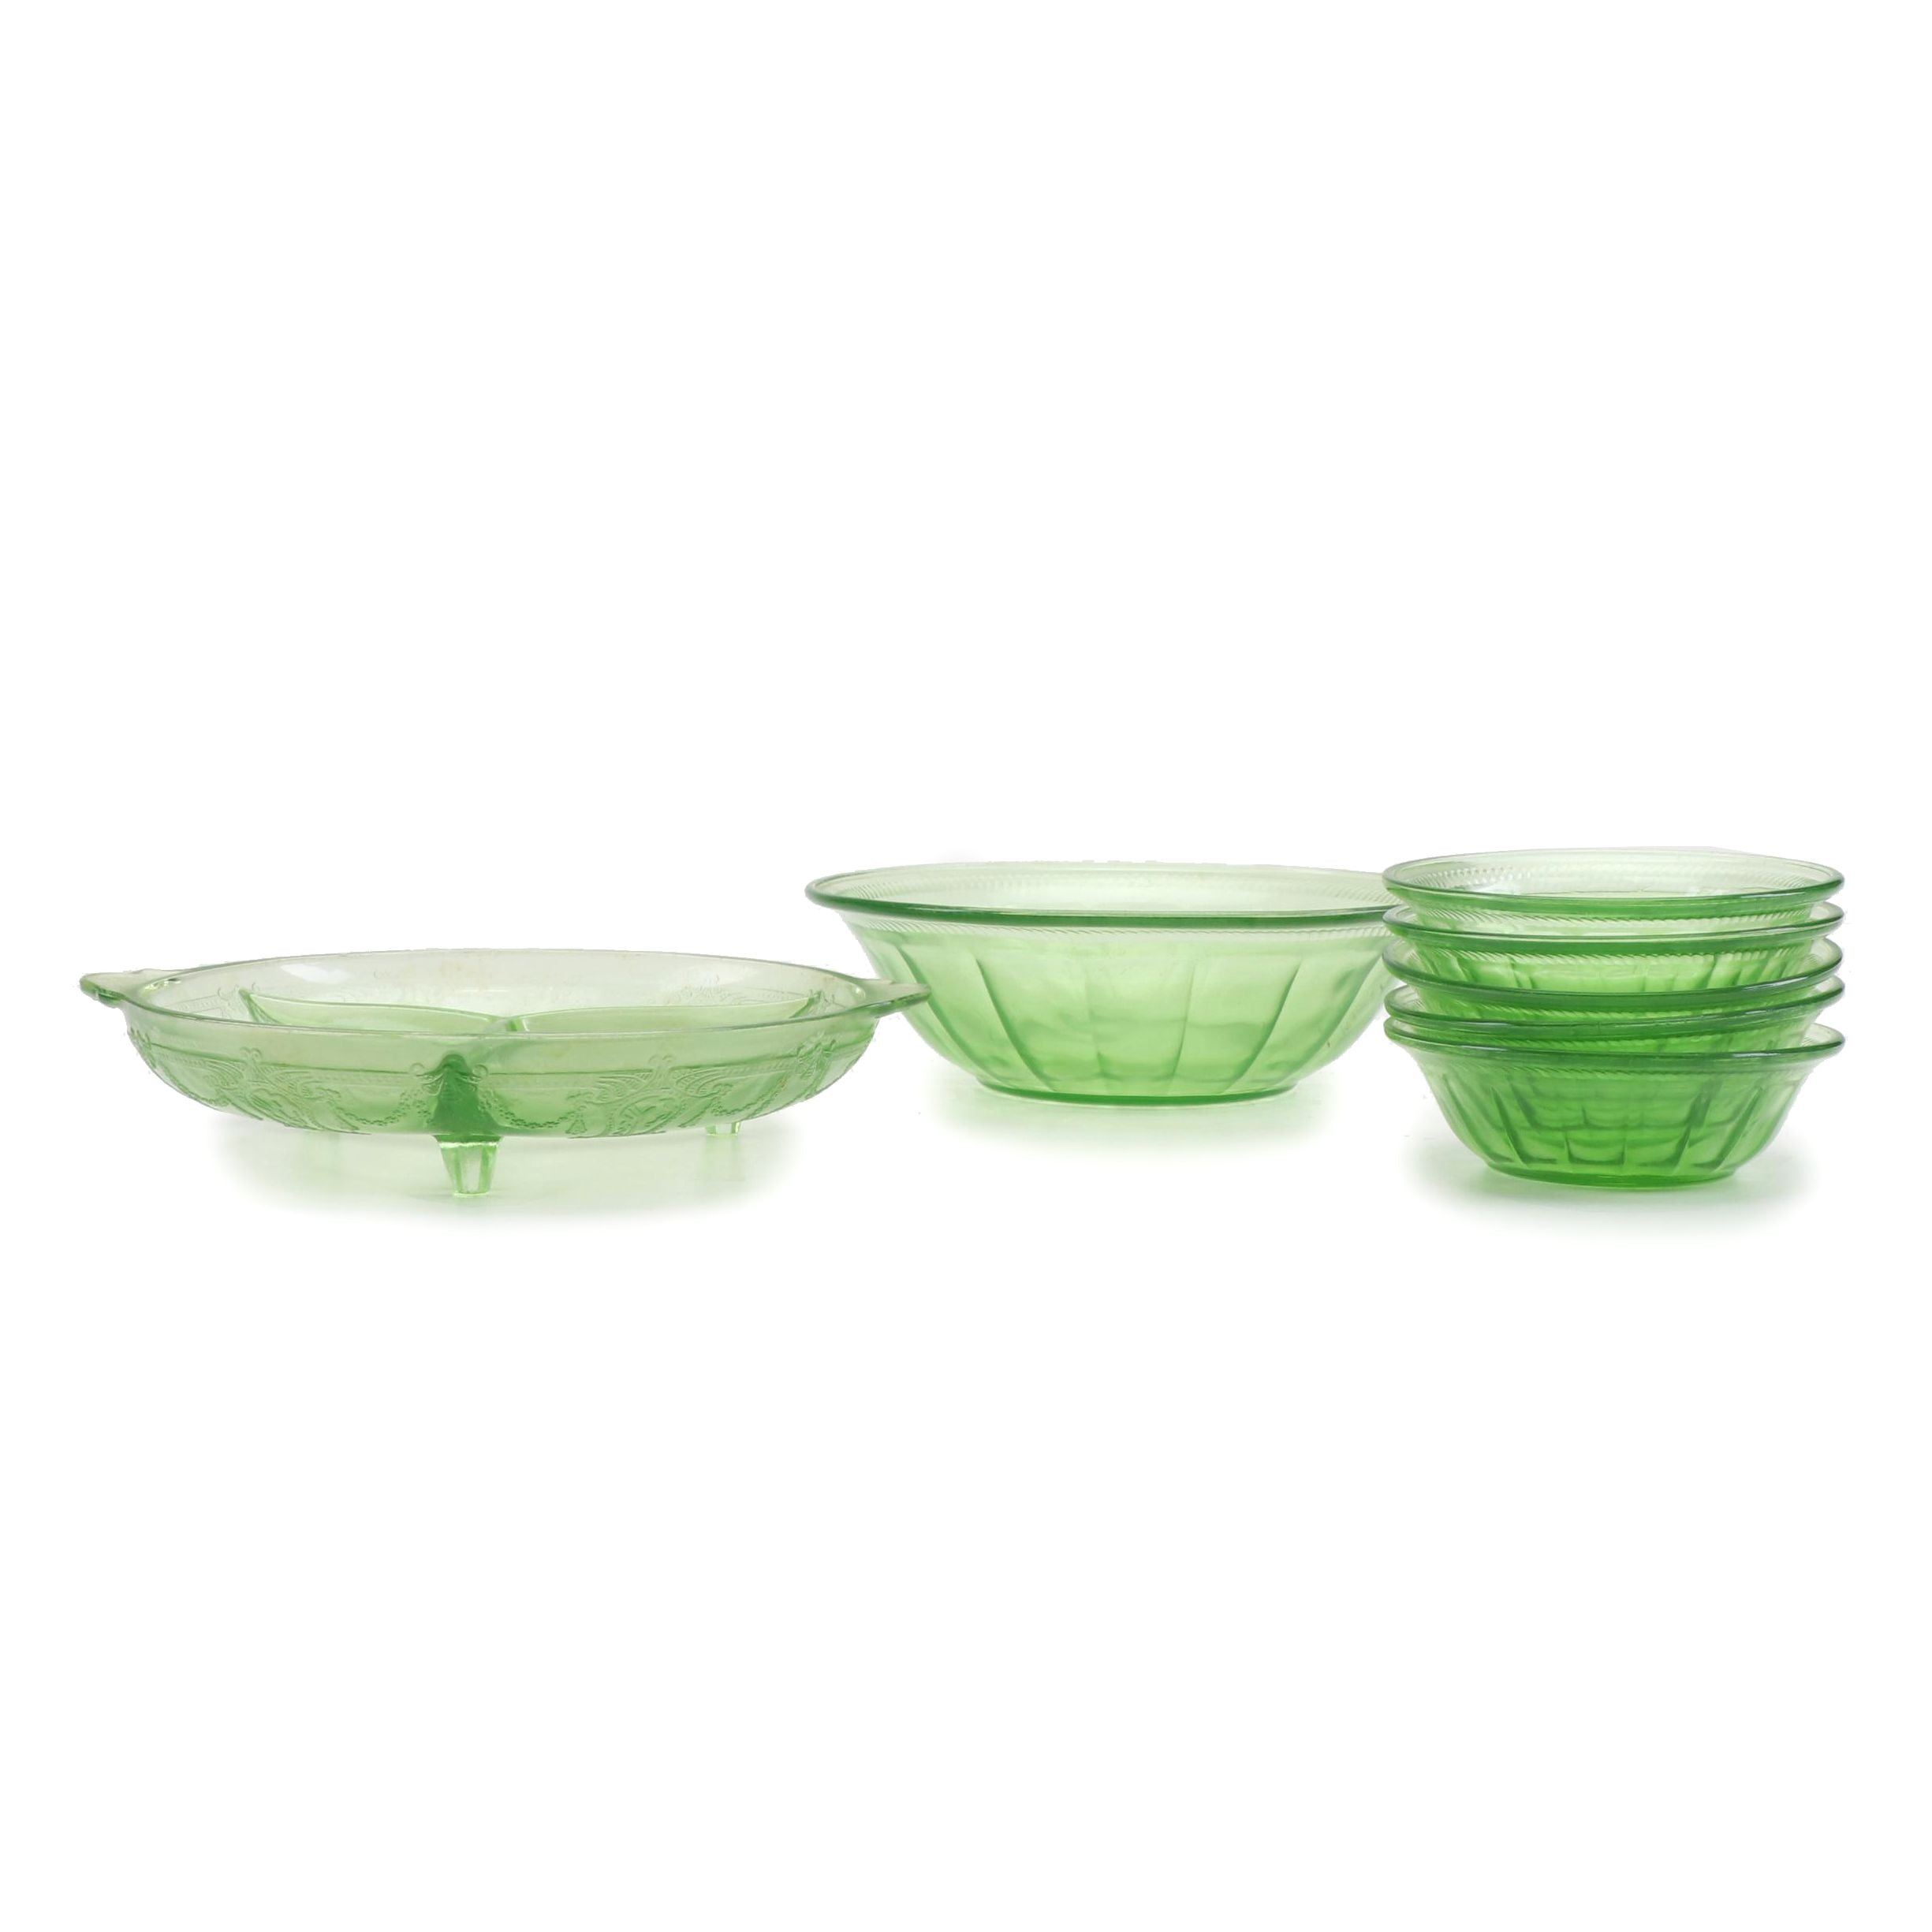 Fostoria Pressed Glass Serving Bowl, Fruit Bowls, and Divided Condiment Bowl